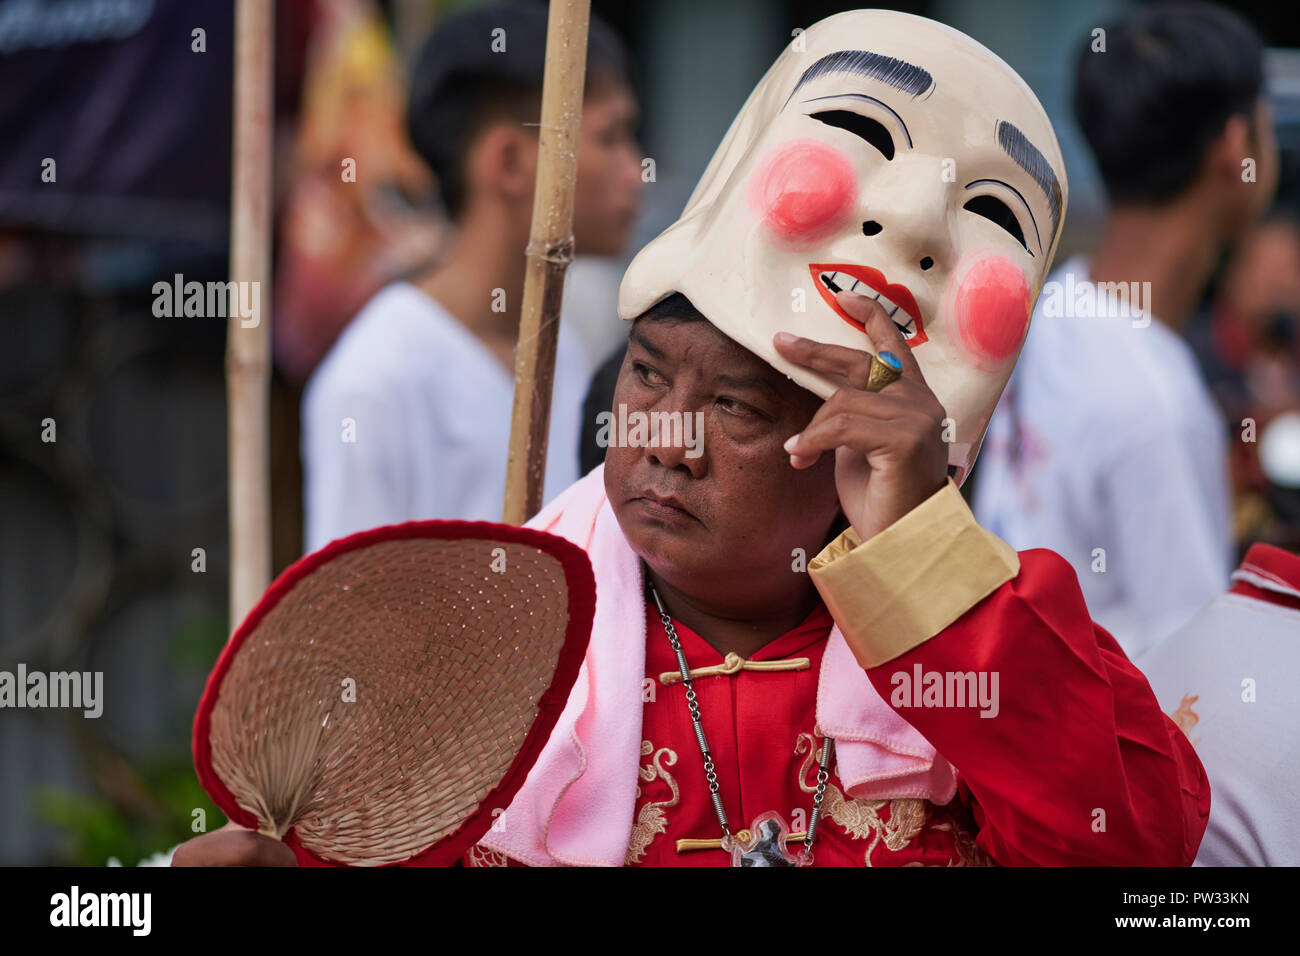 A participant in a procession during the Vegetarian Festival in Thalang, Phuket, Thailand, lifting his Chinese mask to reveal a gloomy face beneath - Stock Image